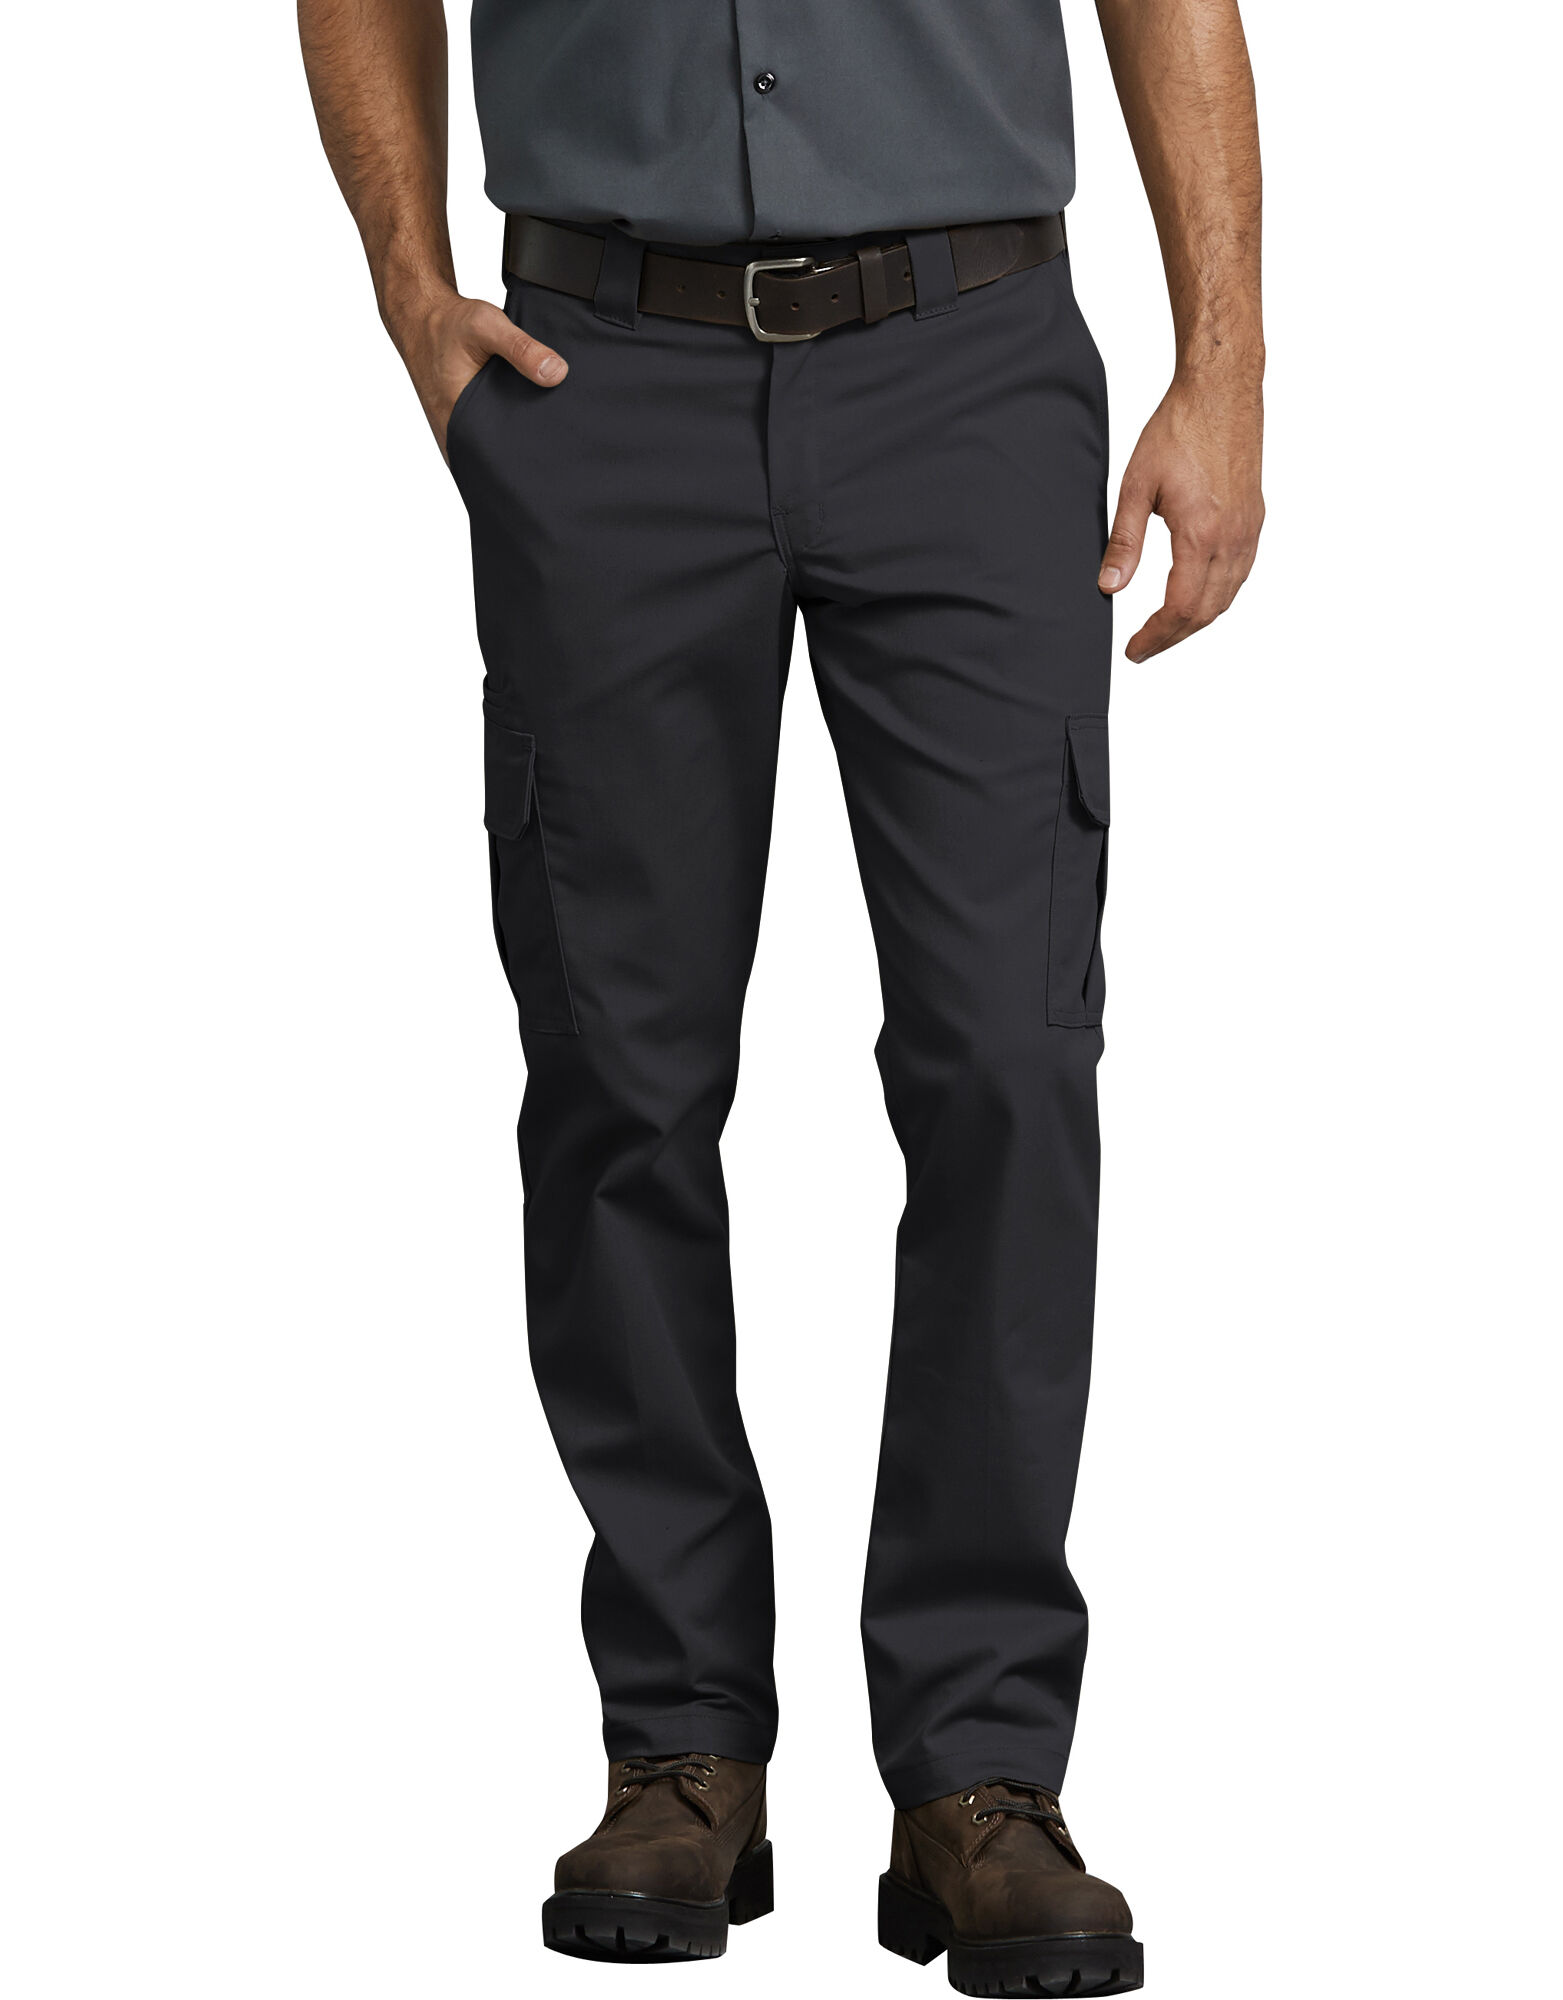 Men's Slim Fit dress pants sit a bit below the waist and have a slim straight leg. They are tailored for a close fit, giving you a crisp and polished profile. Pair with a Slim 1MX dress shirt and Slim blazer and you've got a suit that look like it's been tailored just for you.